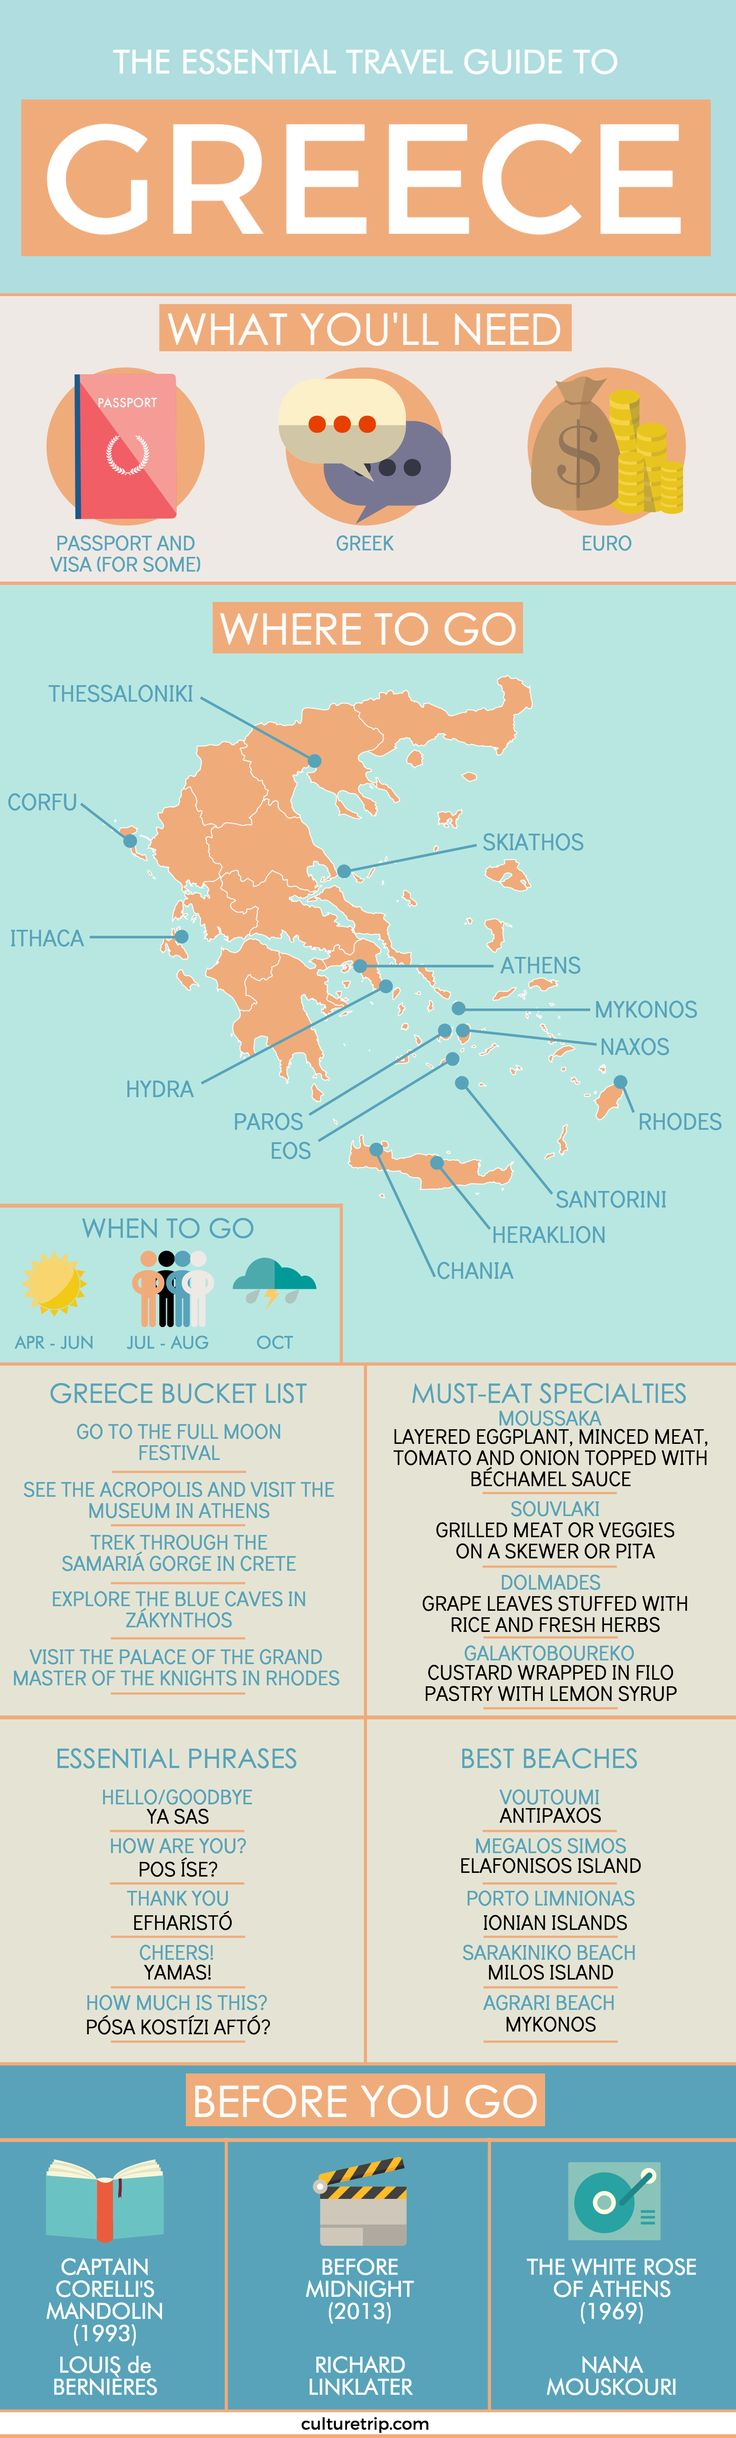 The Ultimate Travel Guide To Greece